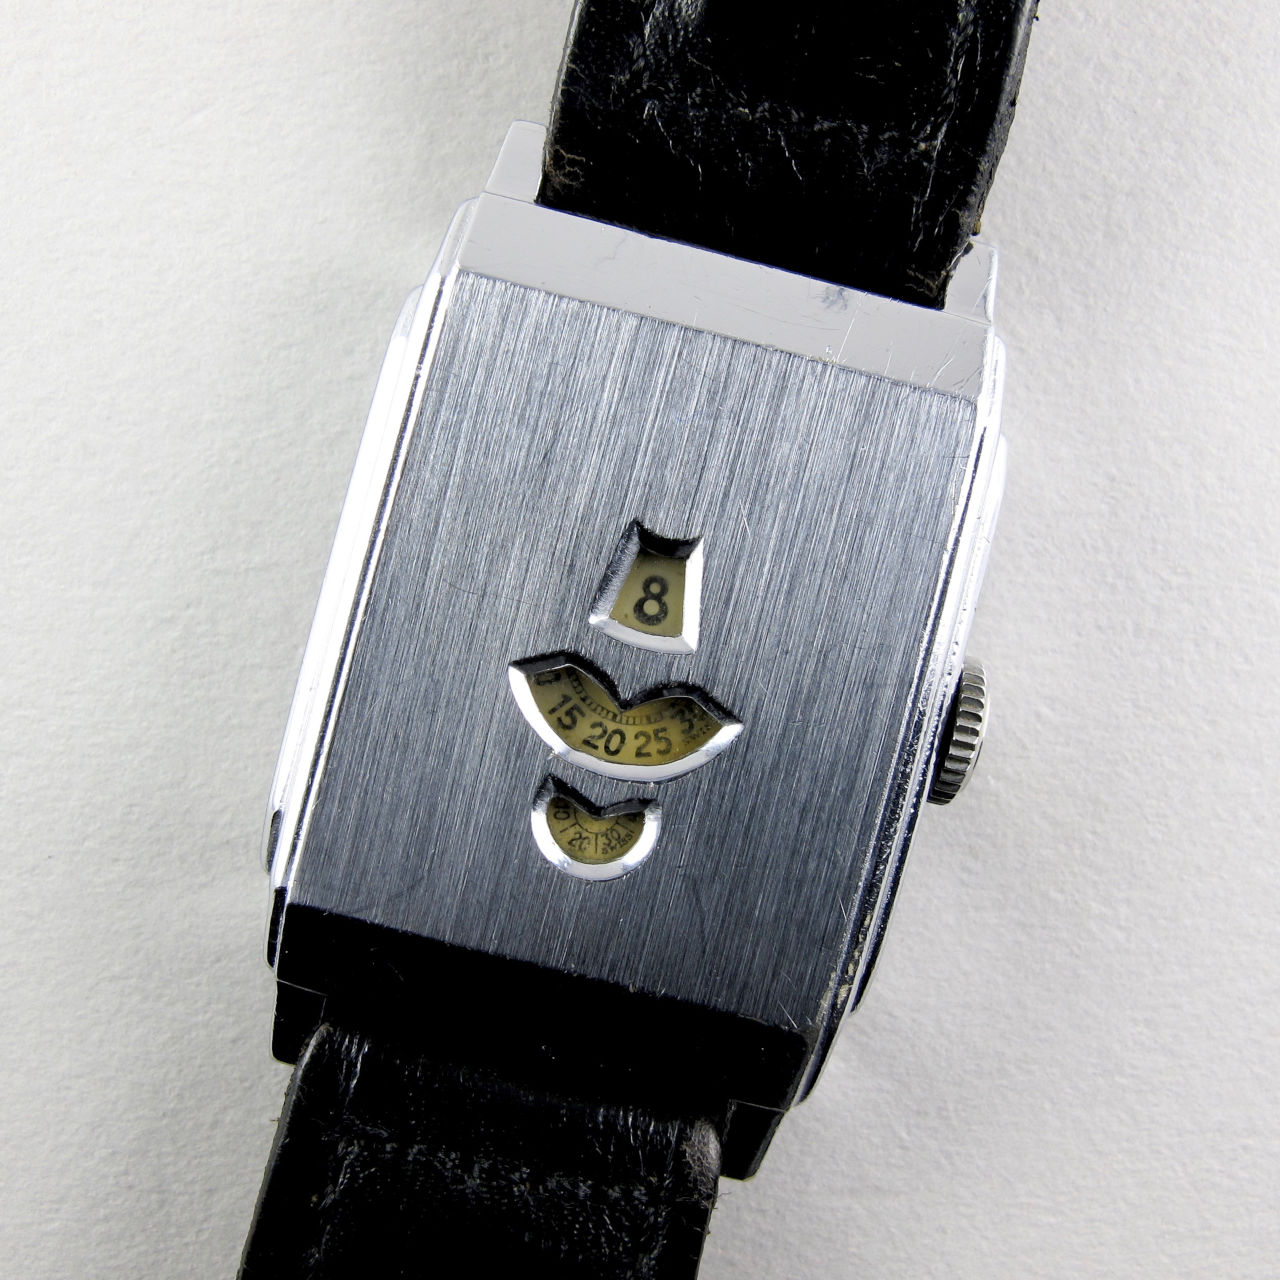 Swiss nickel-chrome vintage wristwatch, circa 1935